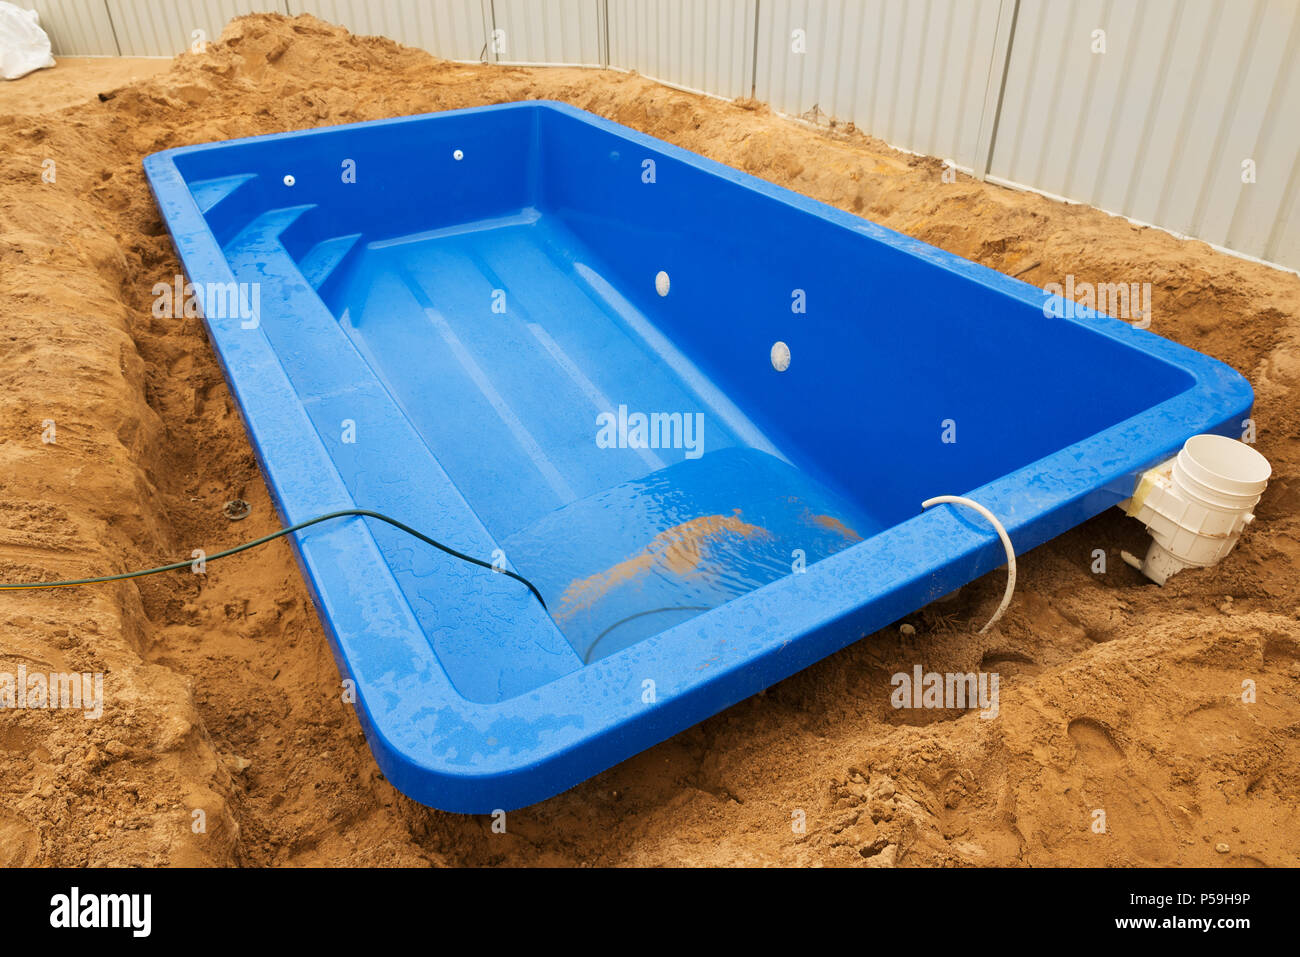 Gfk Pool Formen Swimming Pool Construction Stockfotos Swimming Pool Construction